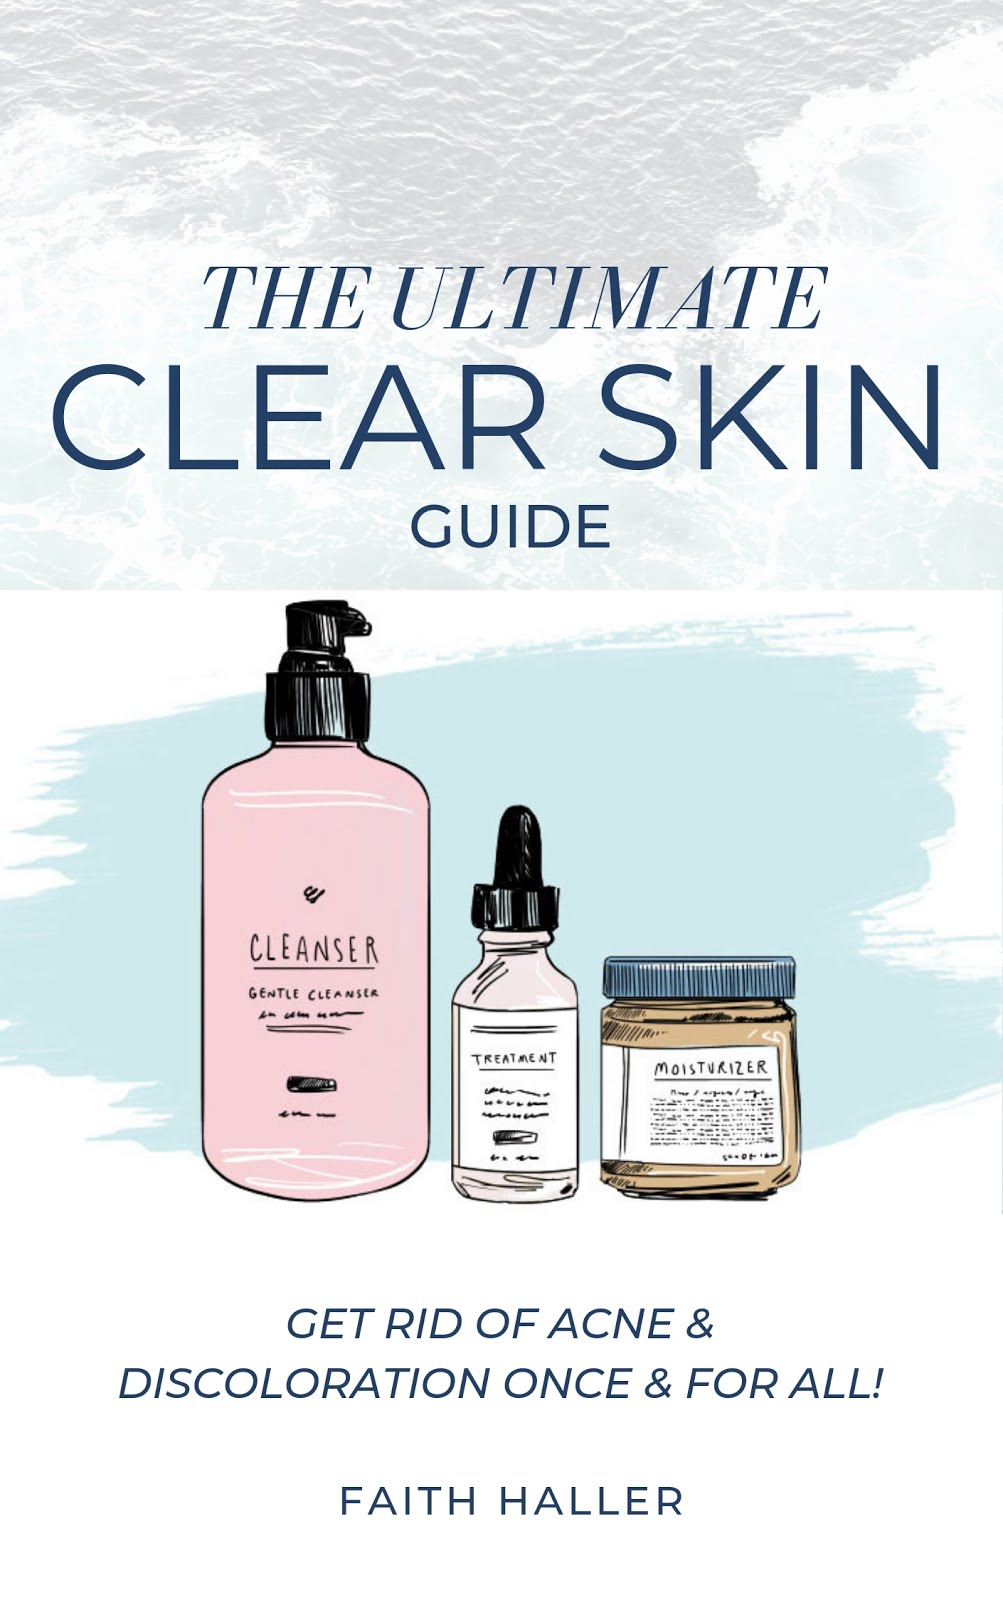 GET CLEAR SKIN TODAY!